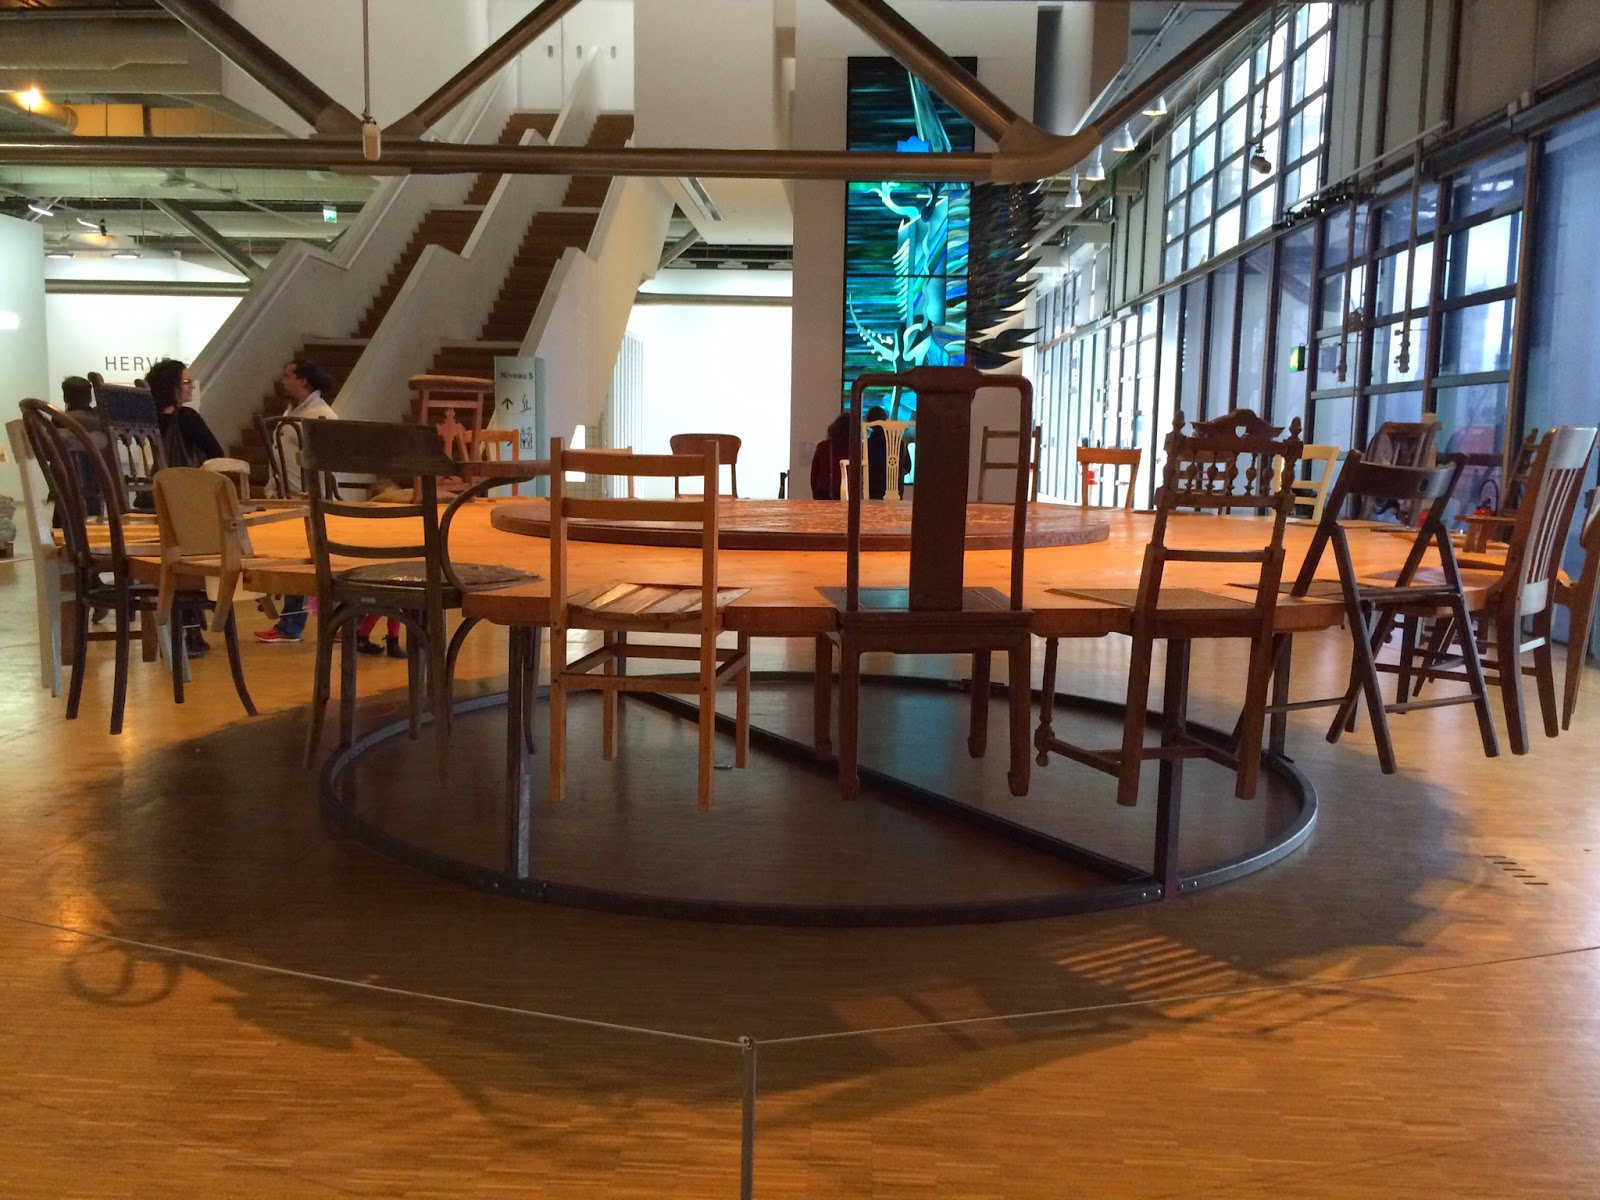 Pic of wooden rounded table artwork with different sized chairs embedded in it